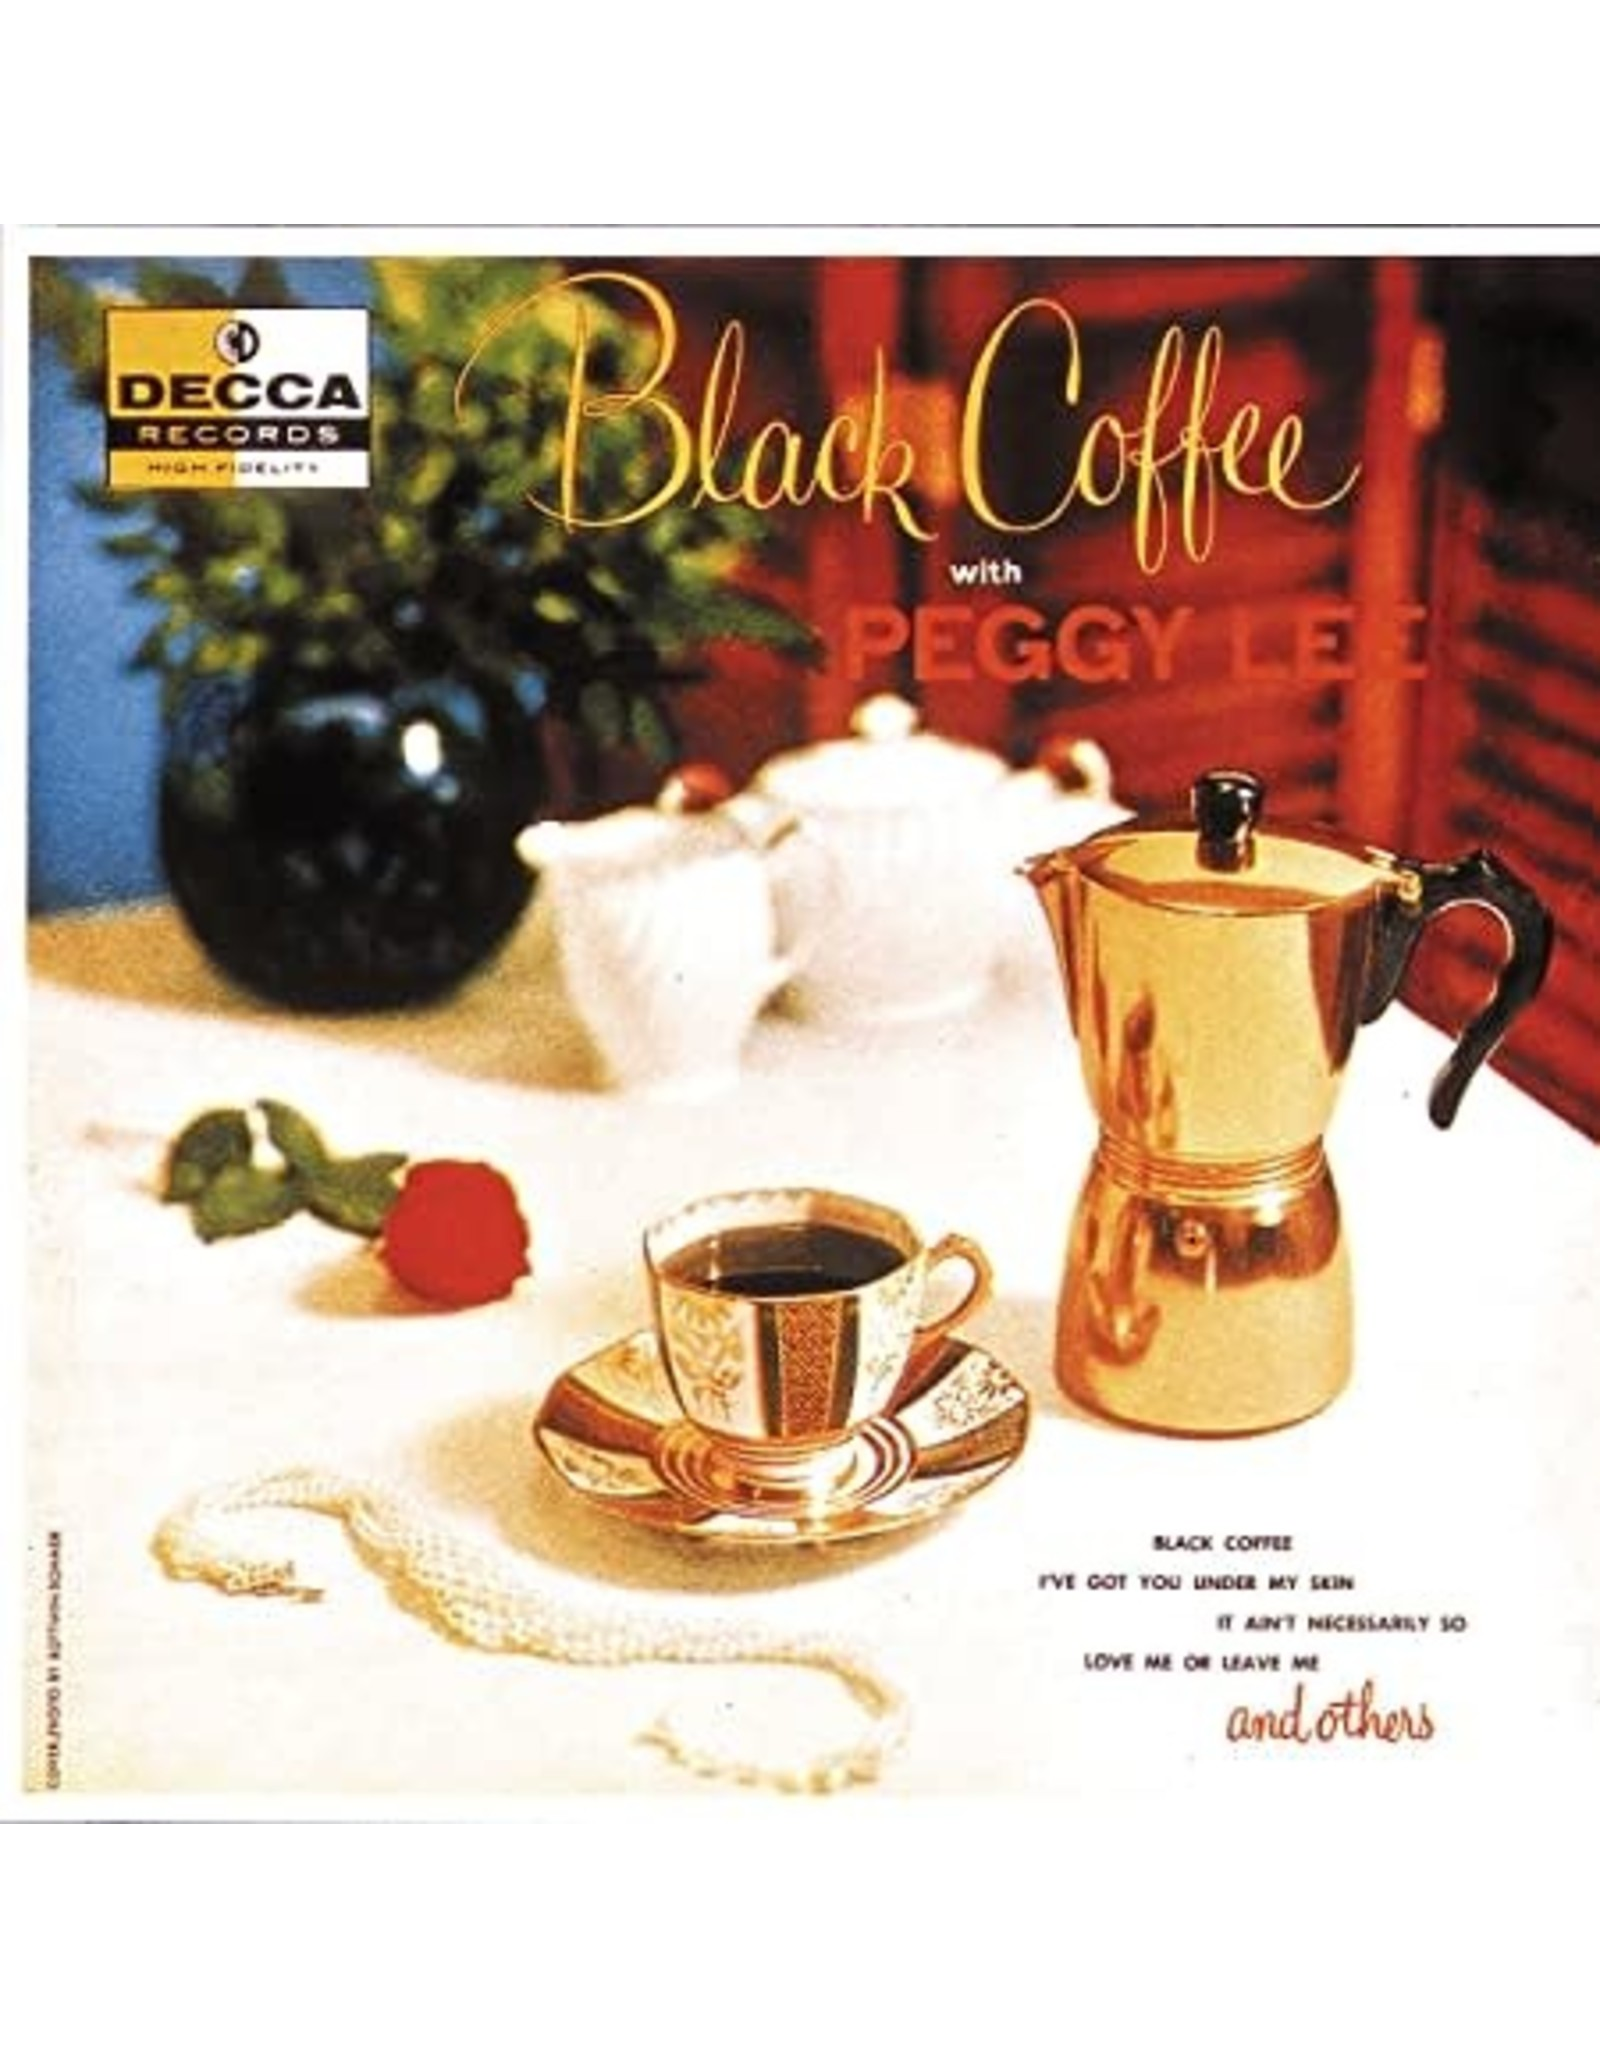 New Vinyl Peggy Lee - Black Coffee (Verve Acoustic Sounds Series) LP